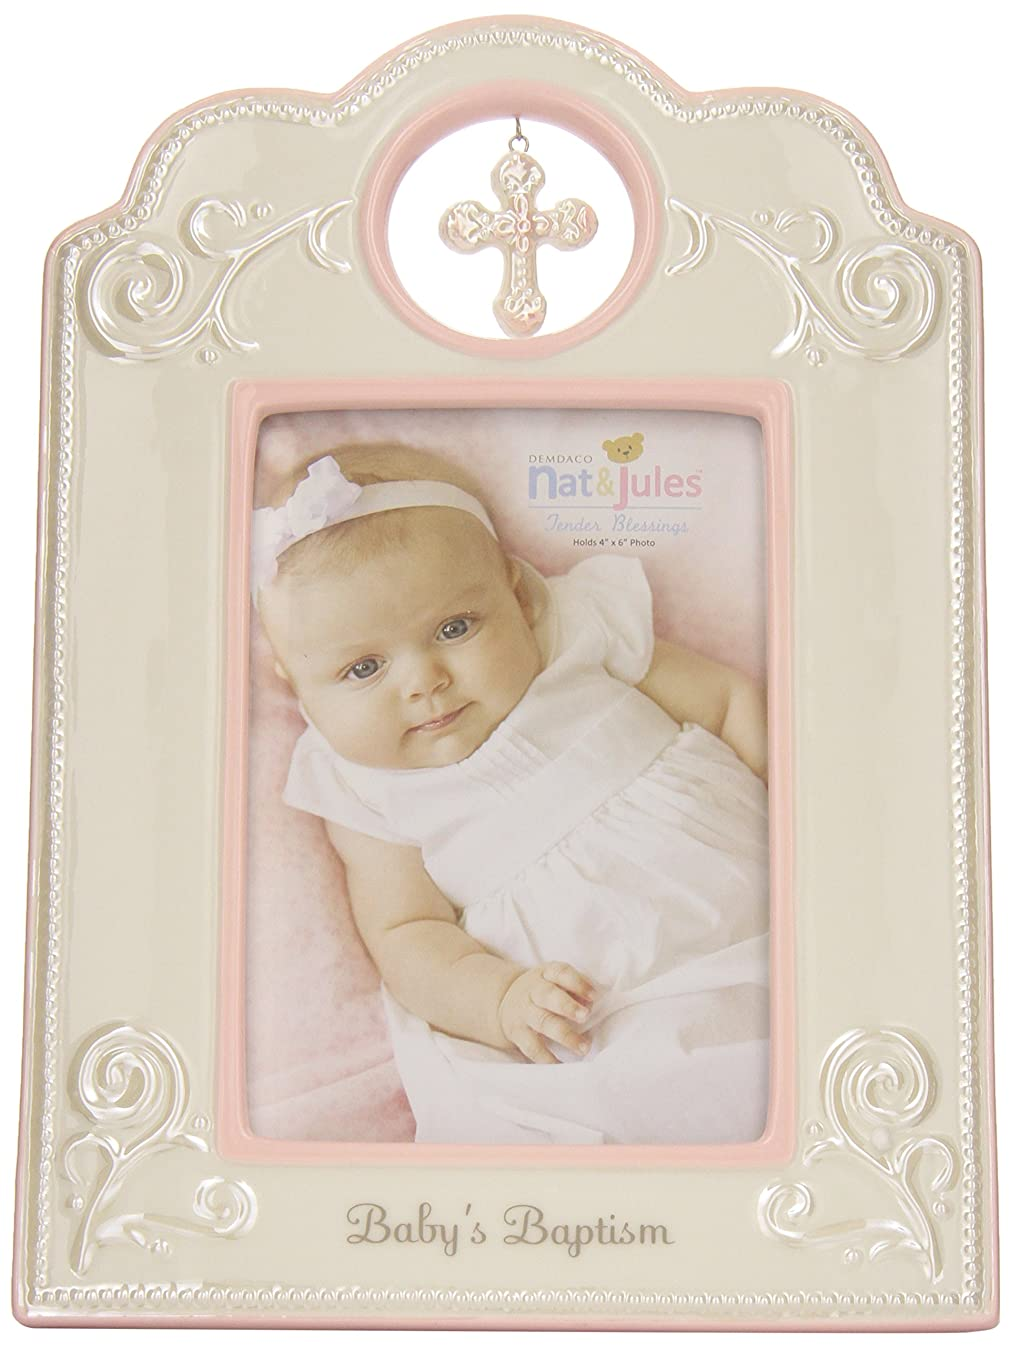 DEMDACO Baby's Baptism 6.75 x 9.75 Inch Porcelain Picture Frame, Pink